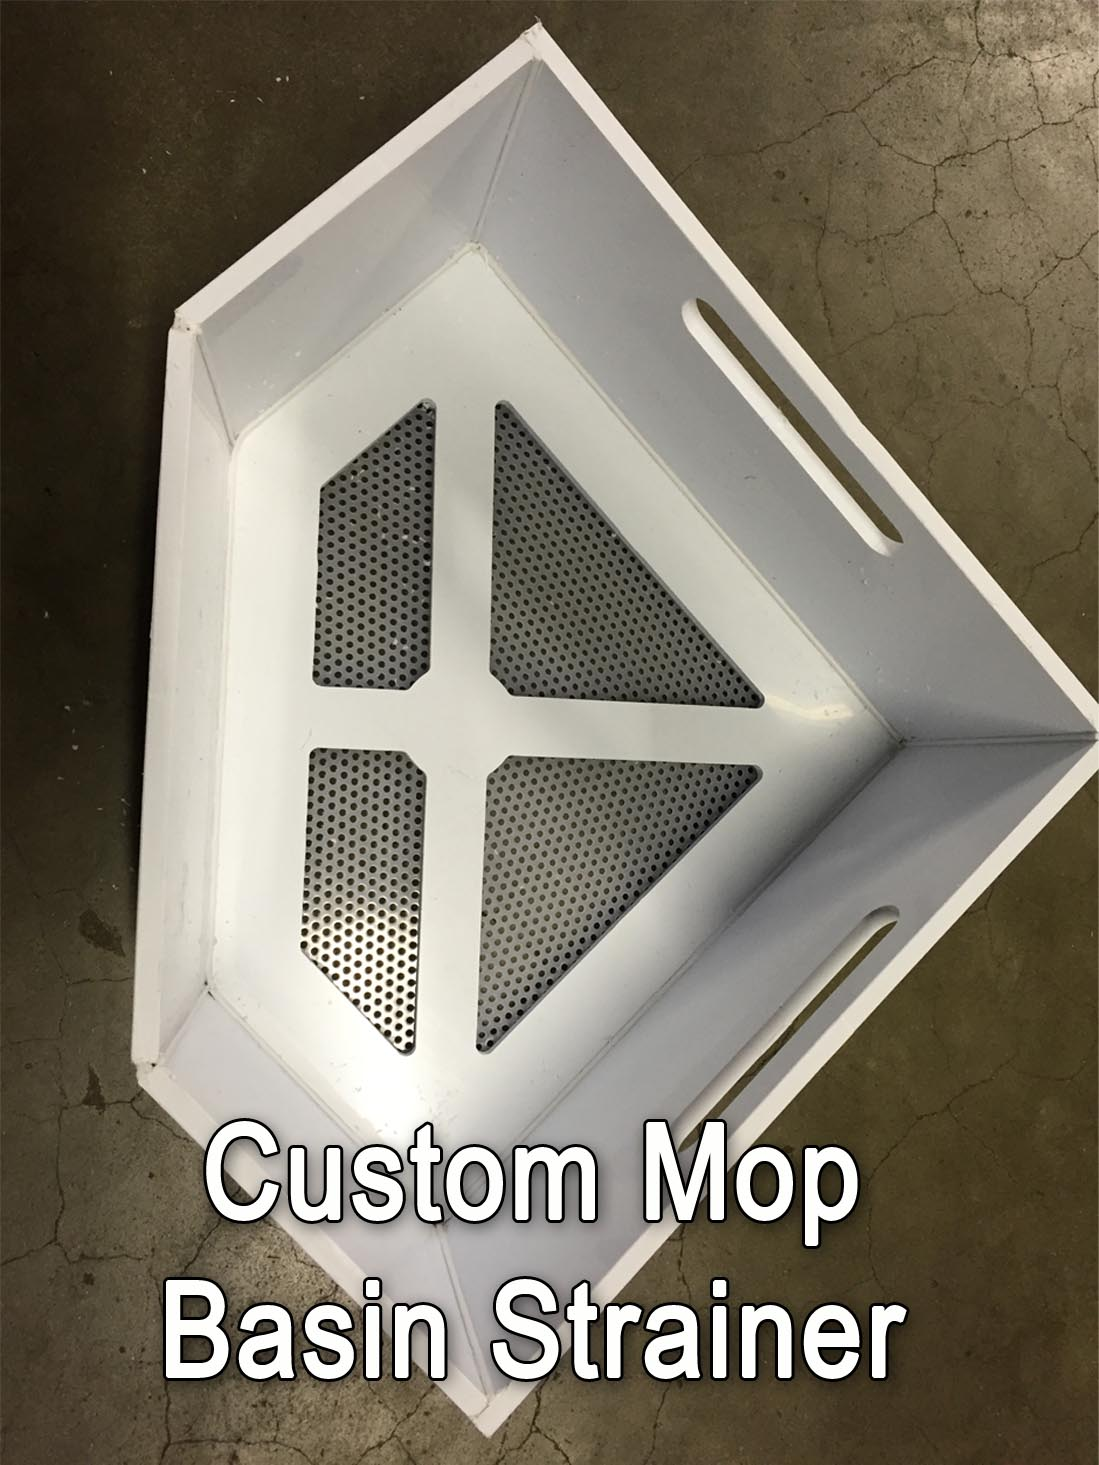 Triangle Shaped Mop Basin Strainer And Other Custom Sizes